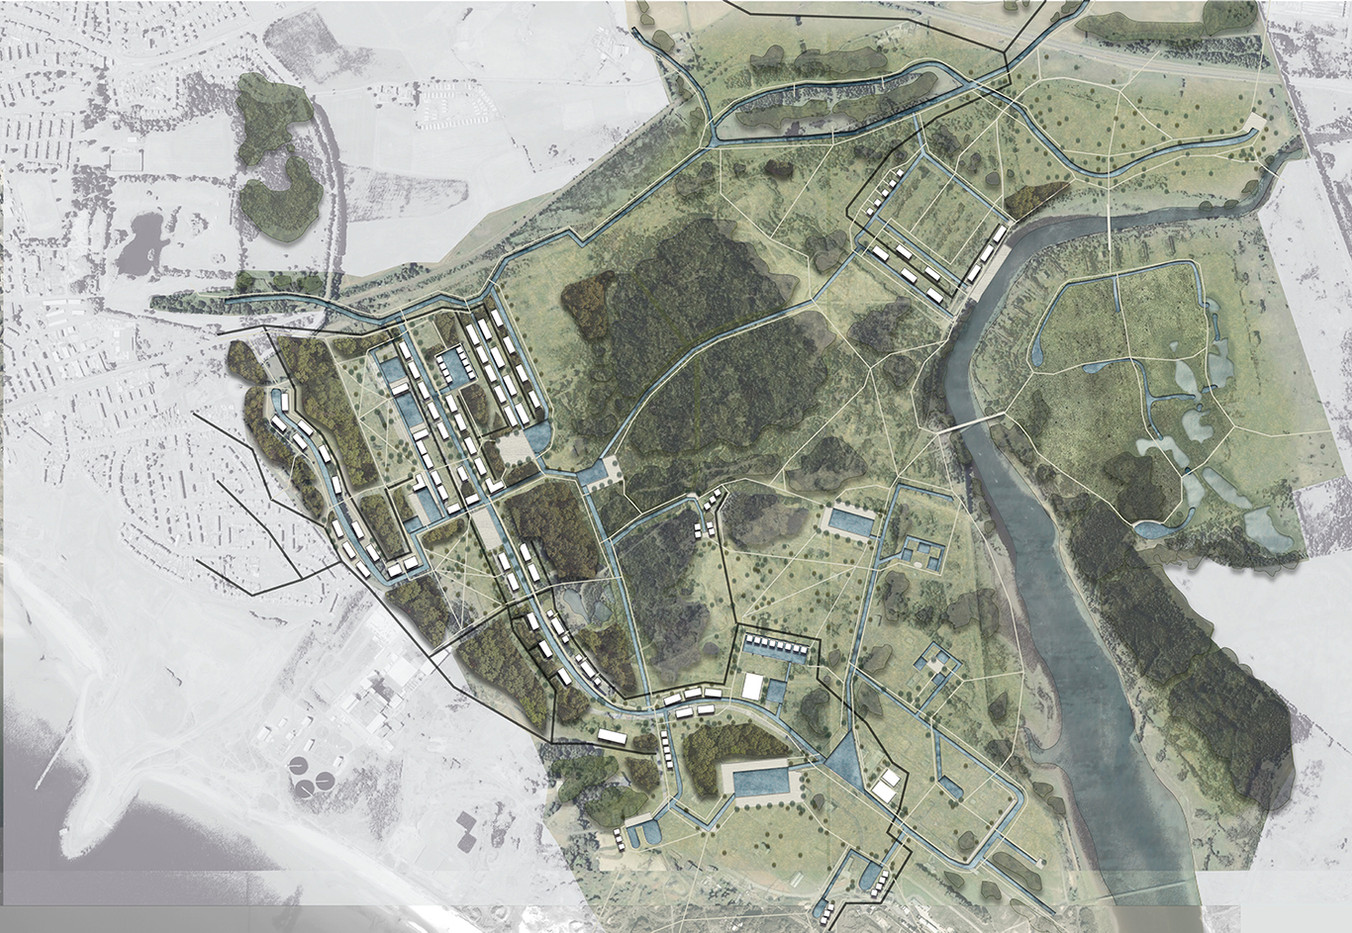 Garnock Valley: Spatial Masterplan, Pen sketch, Illustrator and Photoshop, 2020.